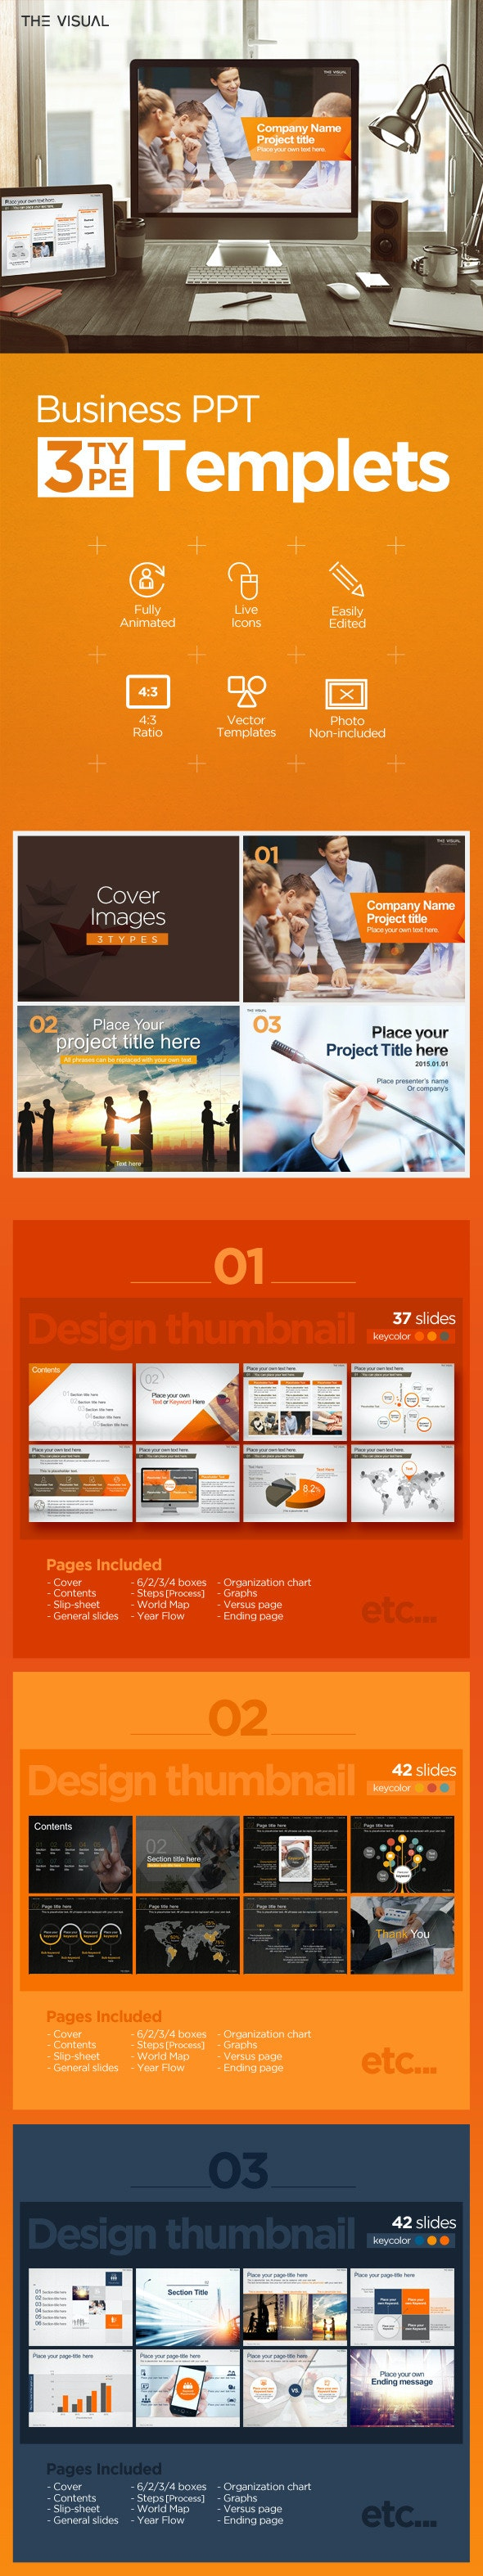 THE VISUAL_POWERPOINT - Finance PowerPoint Templates